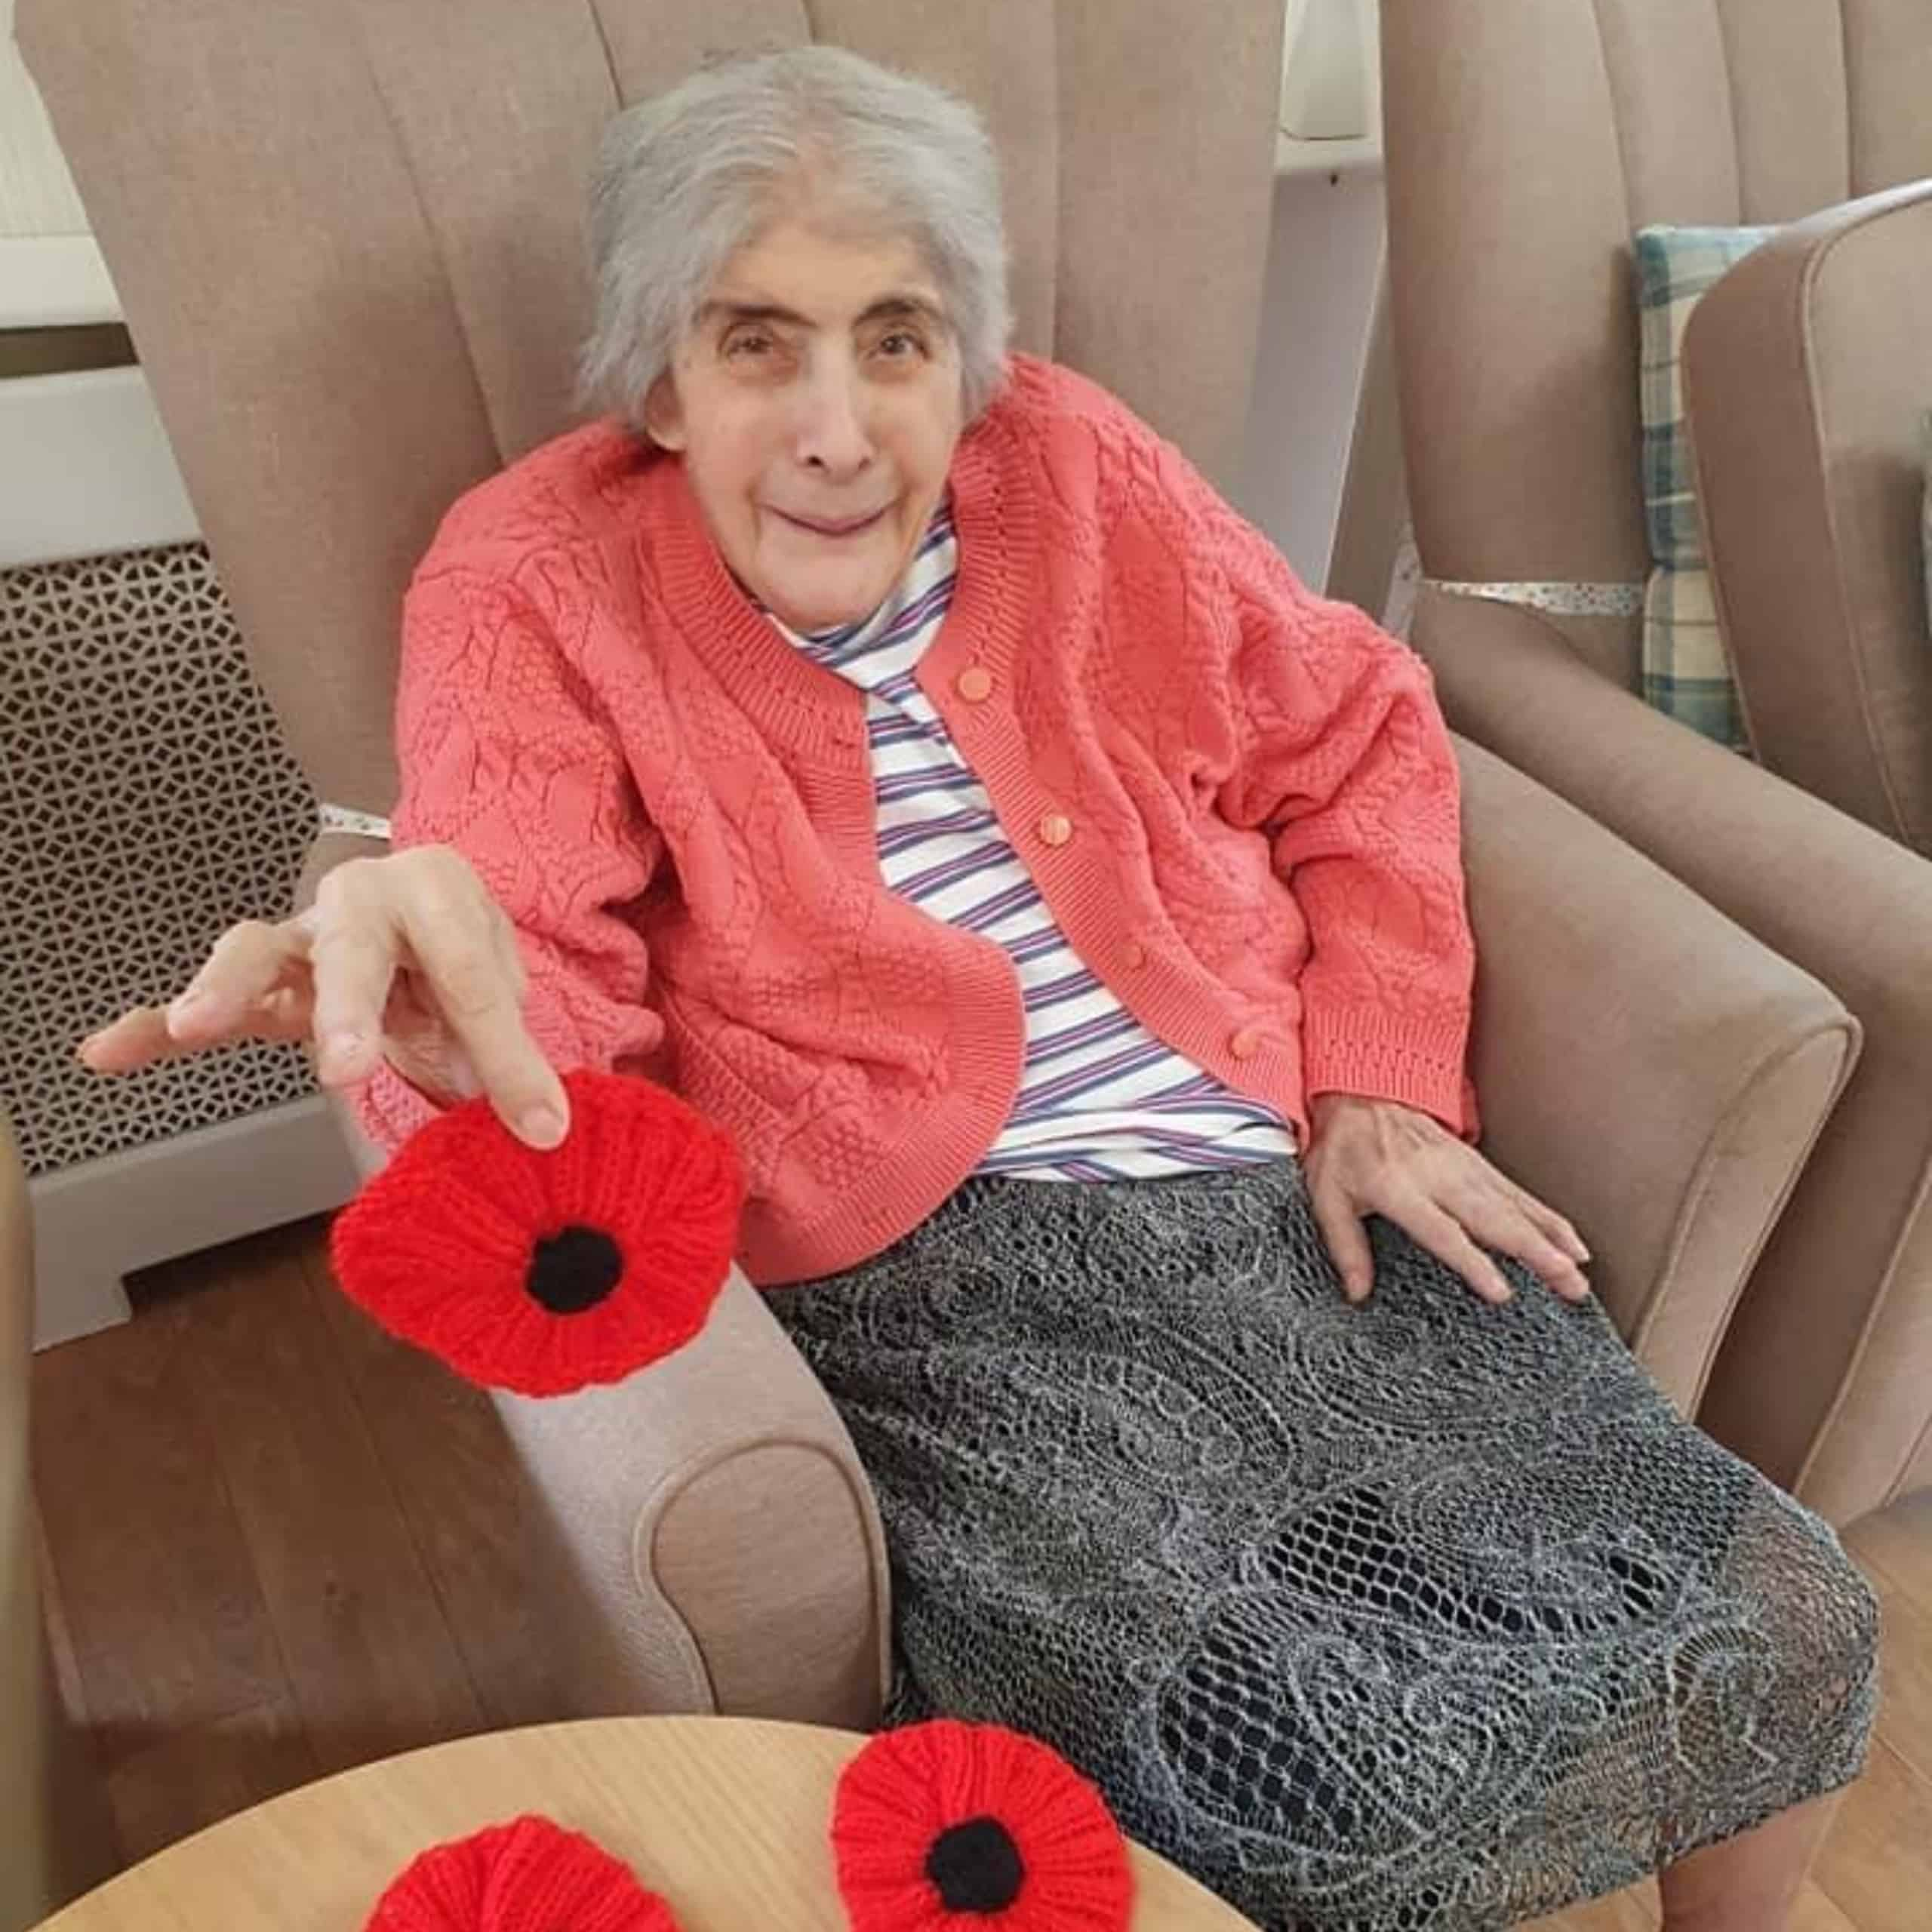 Whitby House care home resident Pauline Butterworth with her knitted poppies for the Royal British Legion.